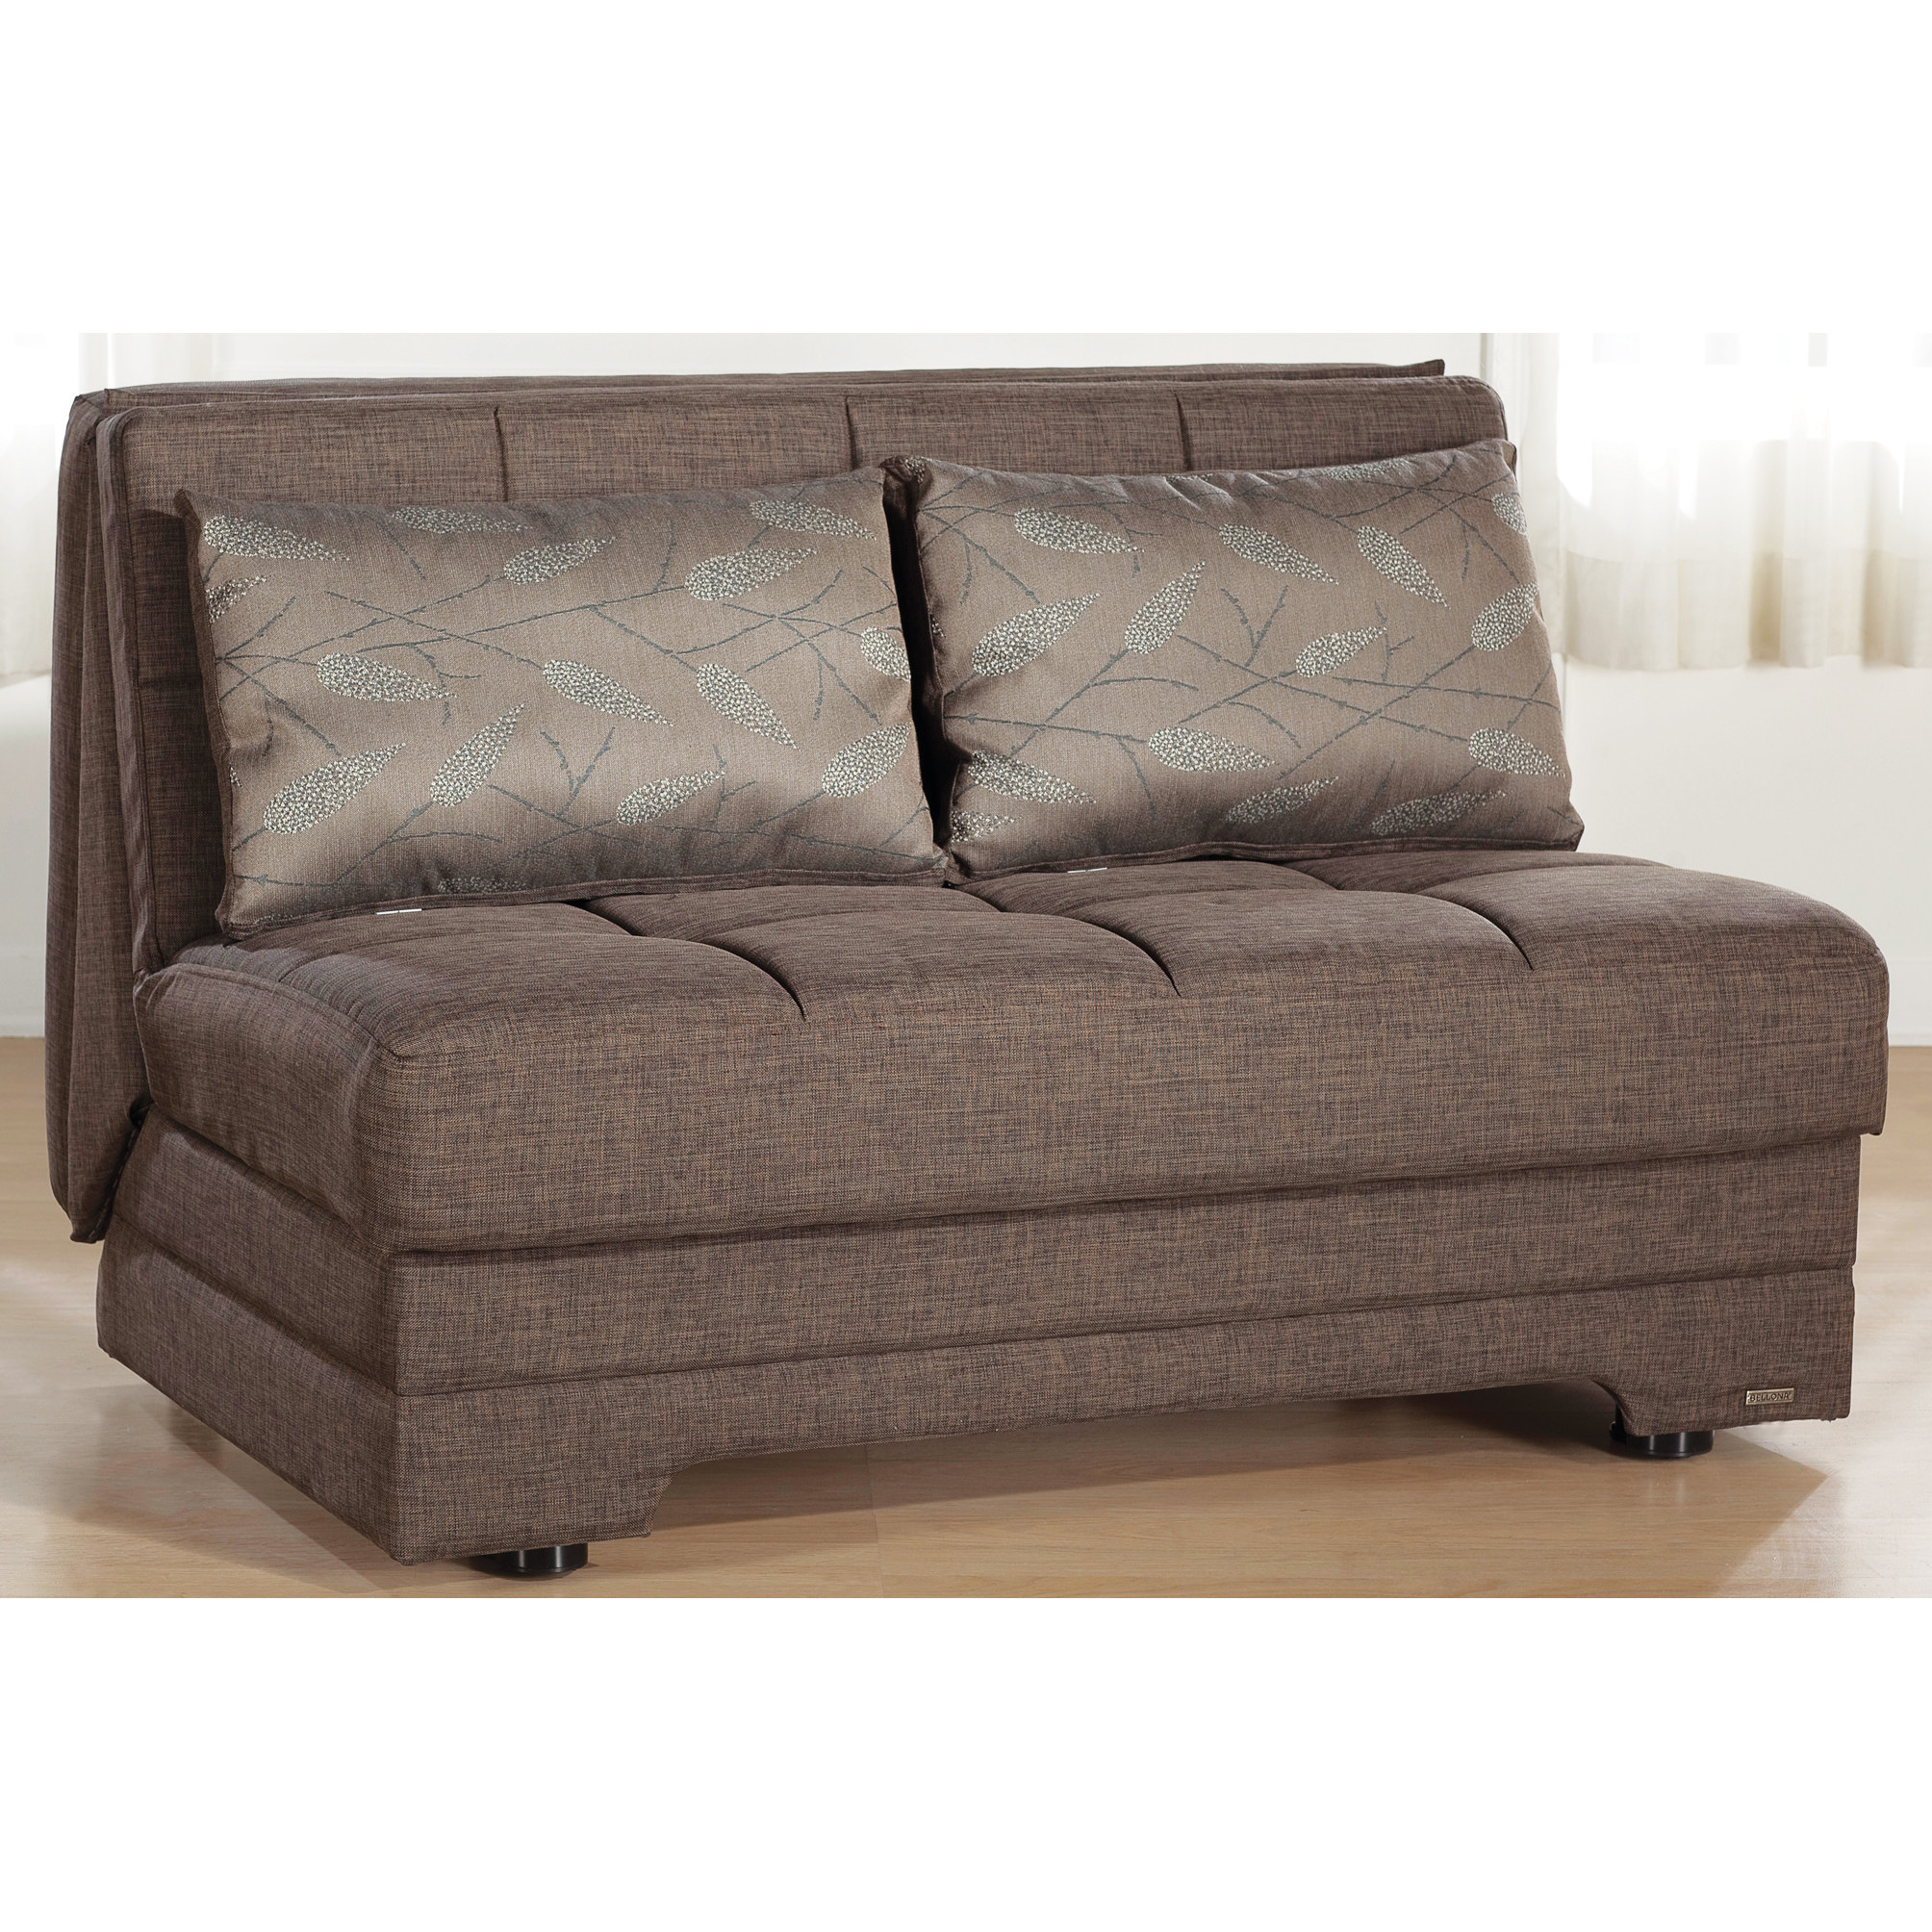 Sleeper Loveseat Walmart | Loveseat Sleeper | Daybed Sofa